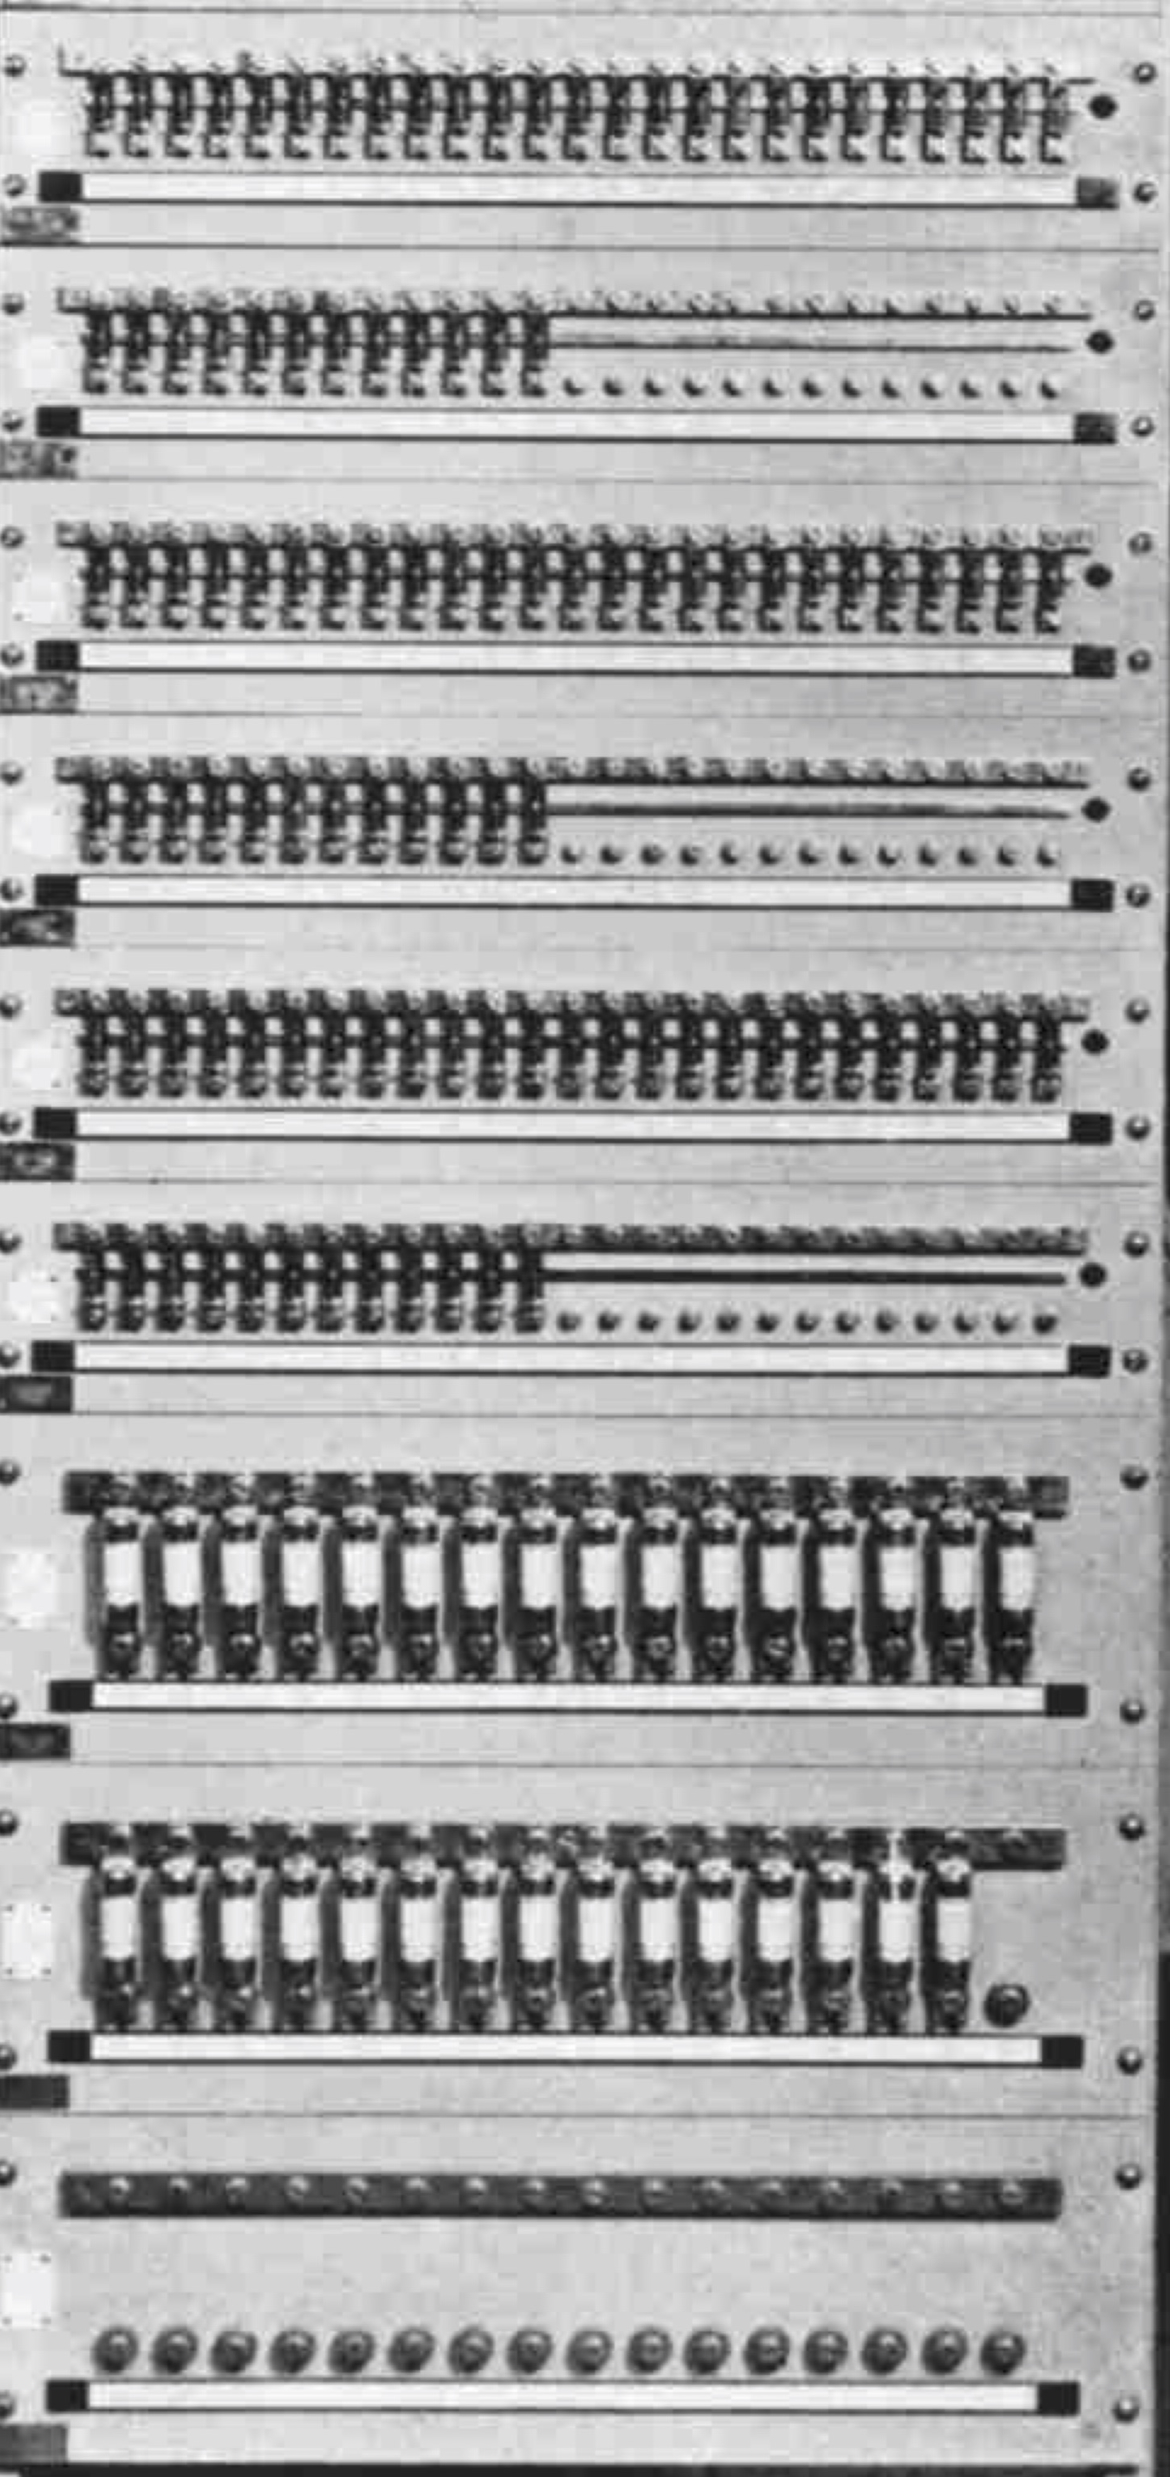 8 banks of fuses